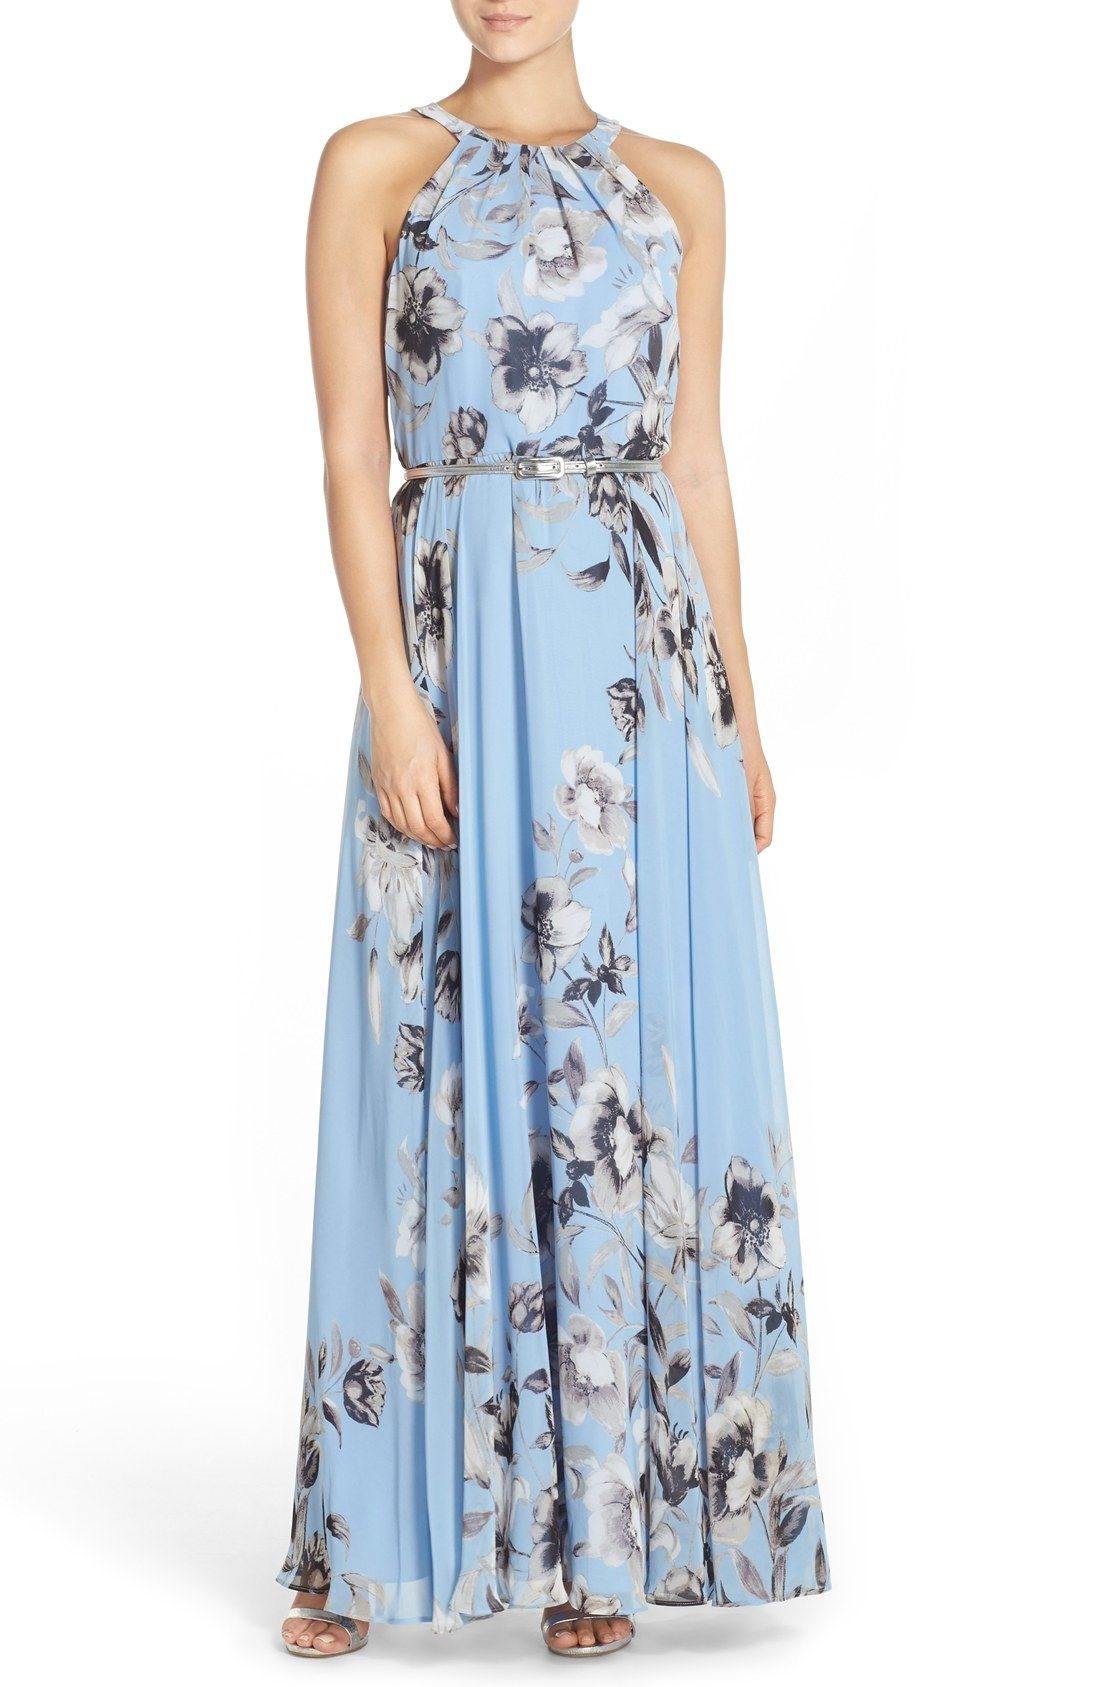 Eliza j belted chiffon maxi dress regular u petite things to